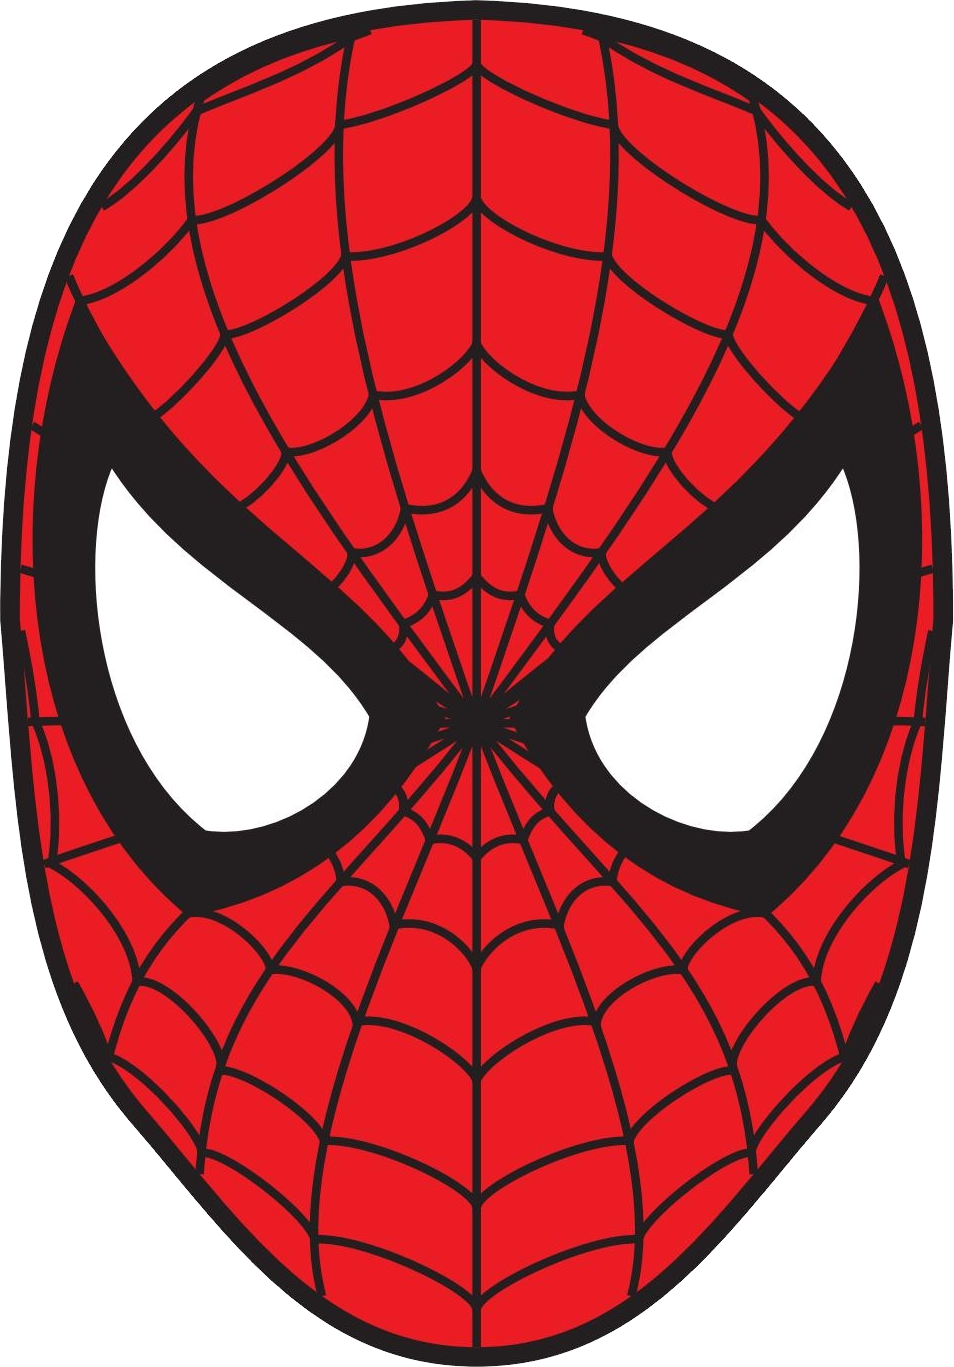 Spider man png images. Logo clipart spiderman